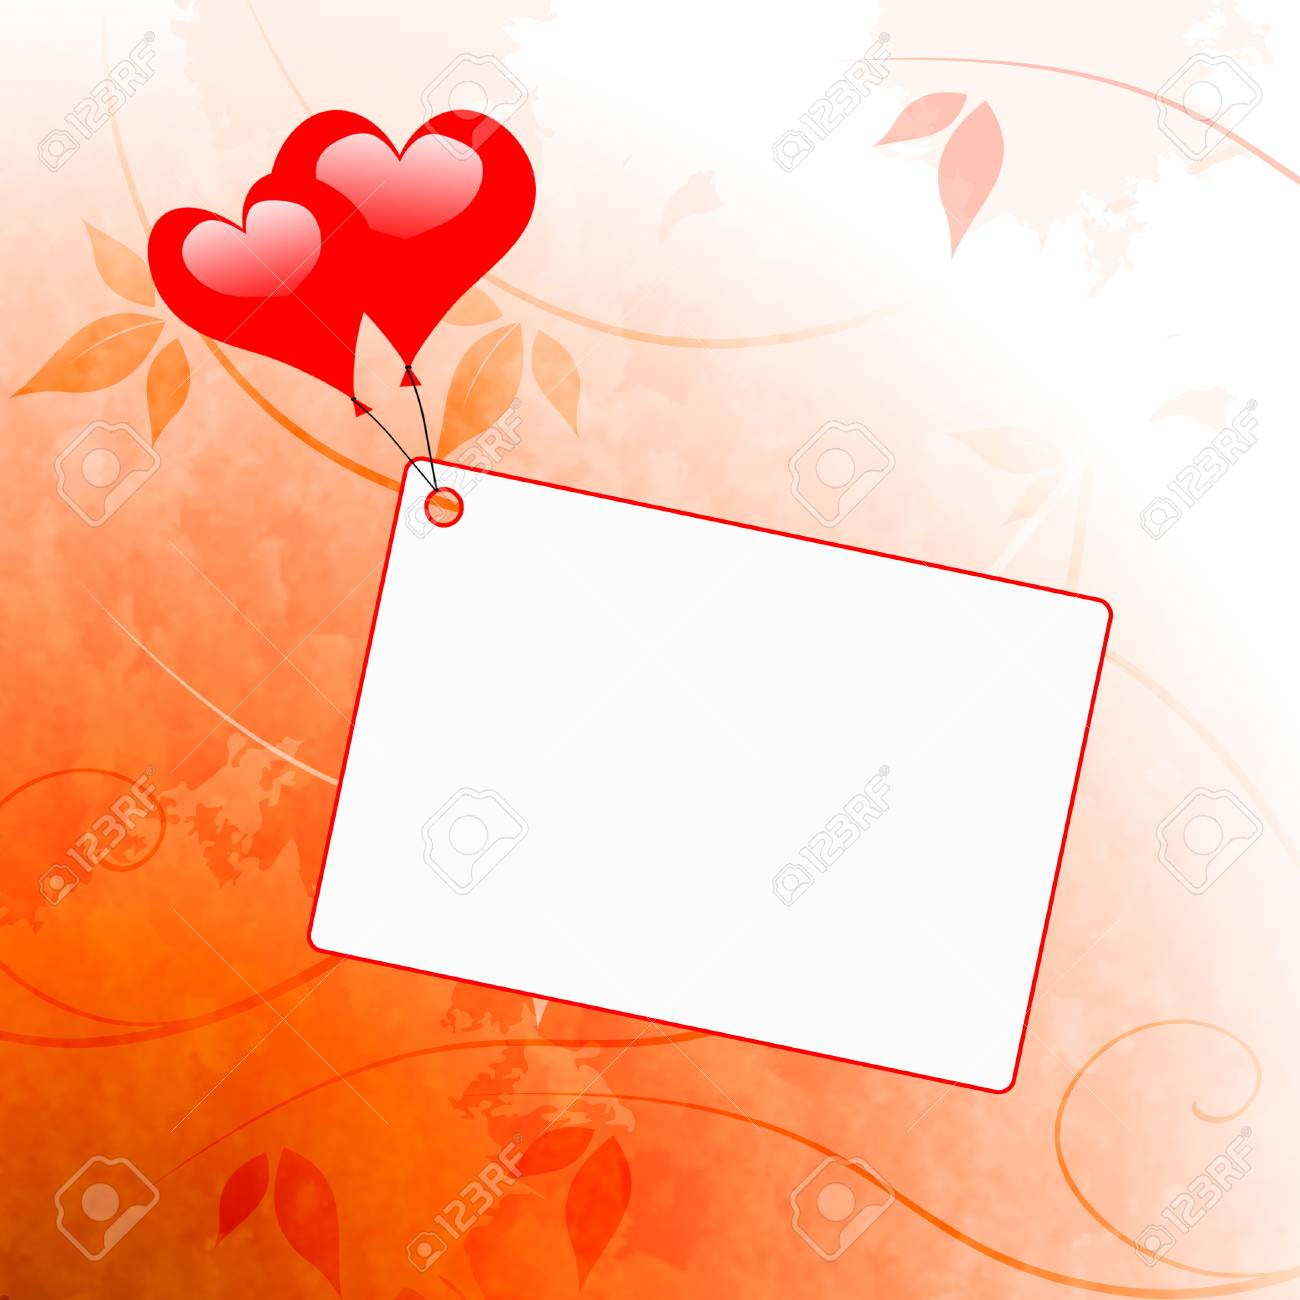 Heart balloons on note meaning wedding invitation or love letter heart balloons on note meaning wedding invitation or love letter stock photo 27900532 stopboris Choice Image